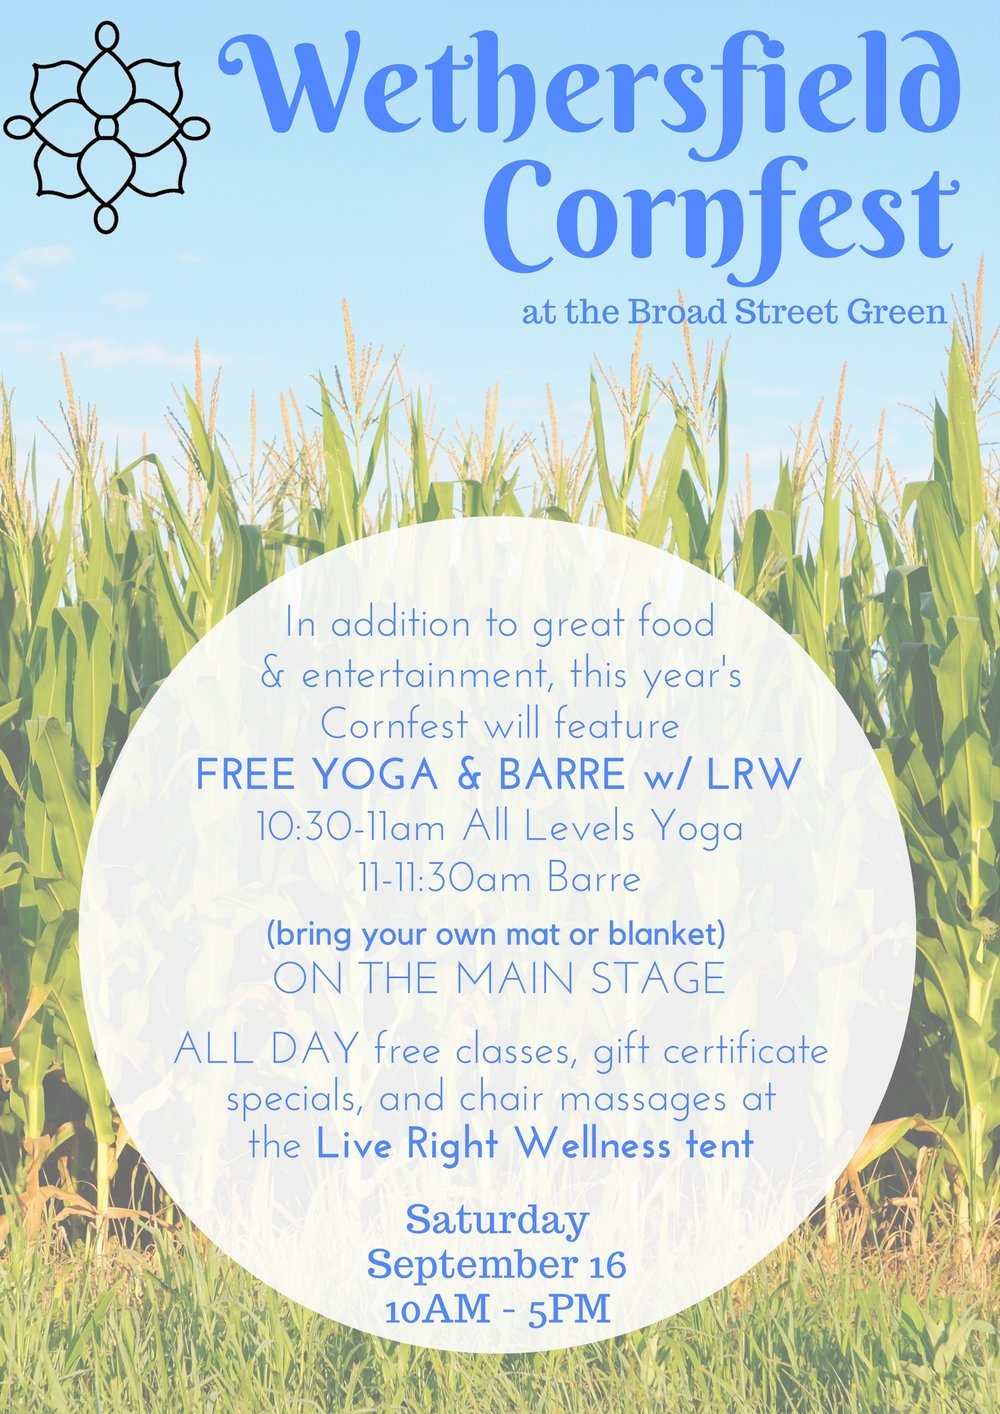 Copy of WethersfieldCornfest (1).jpg